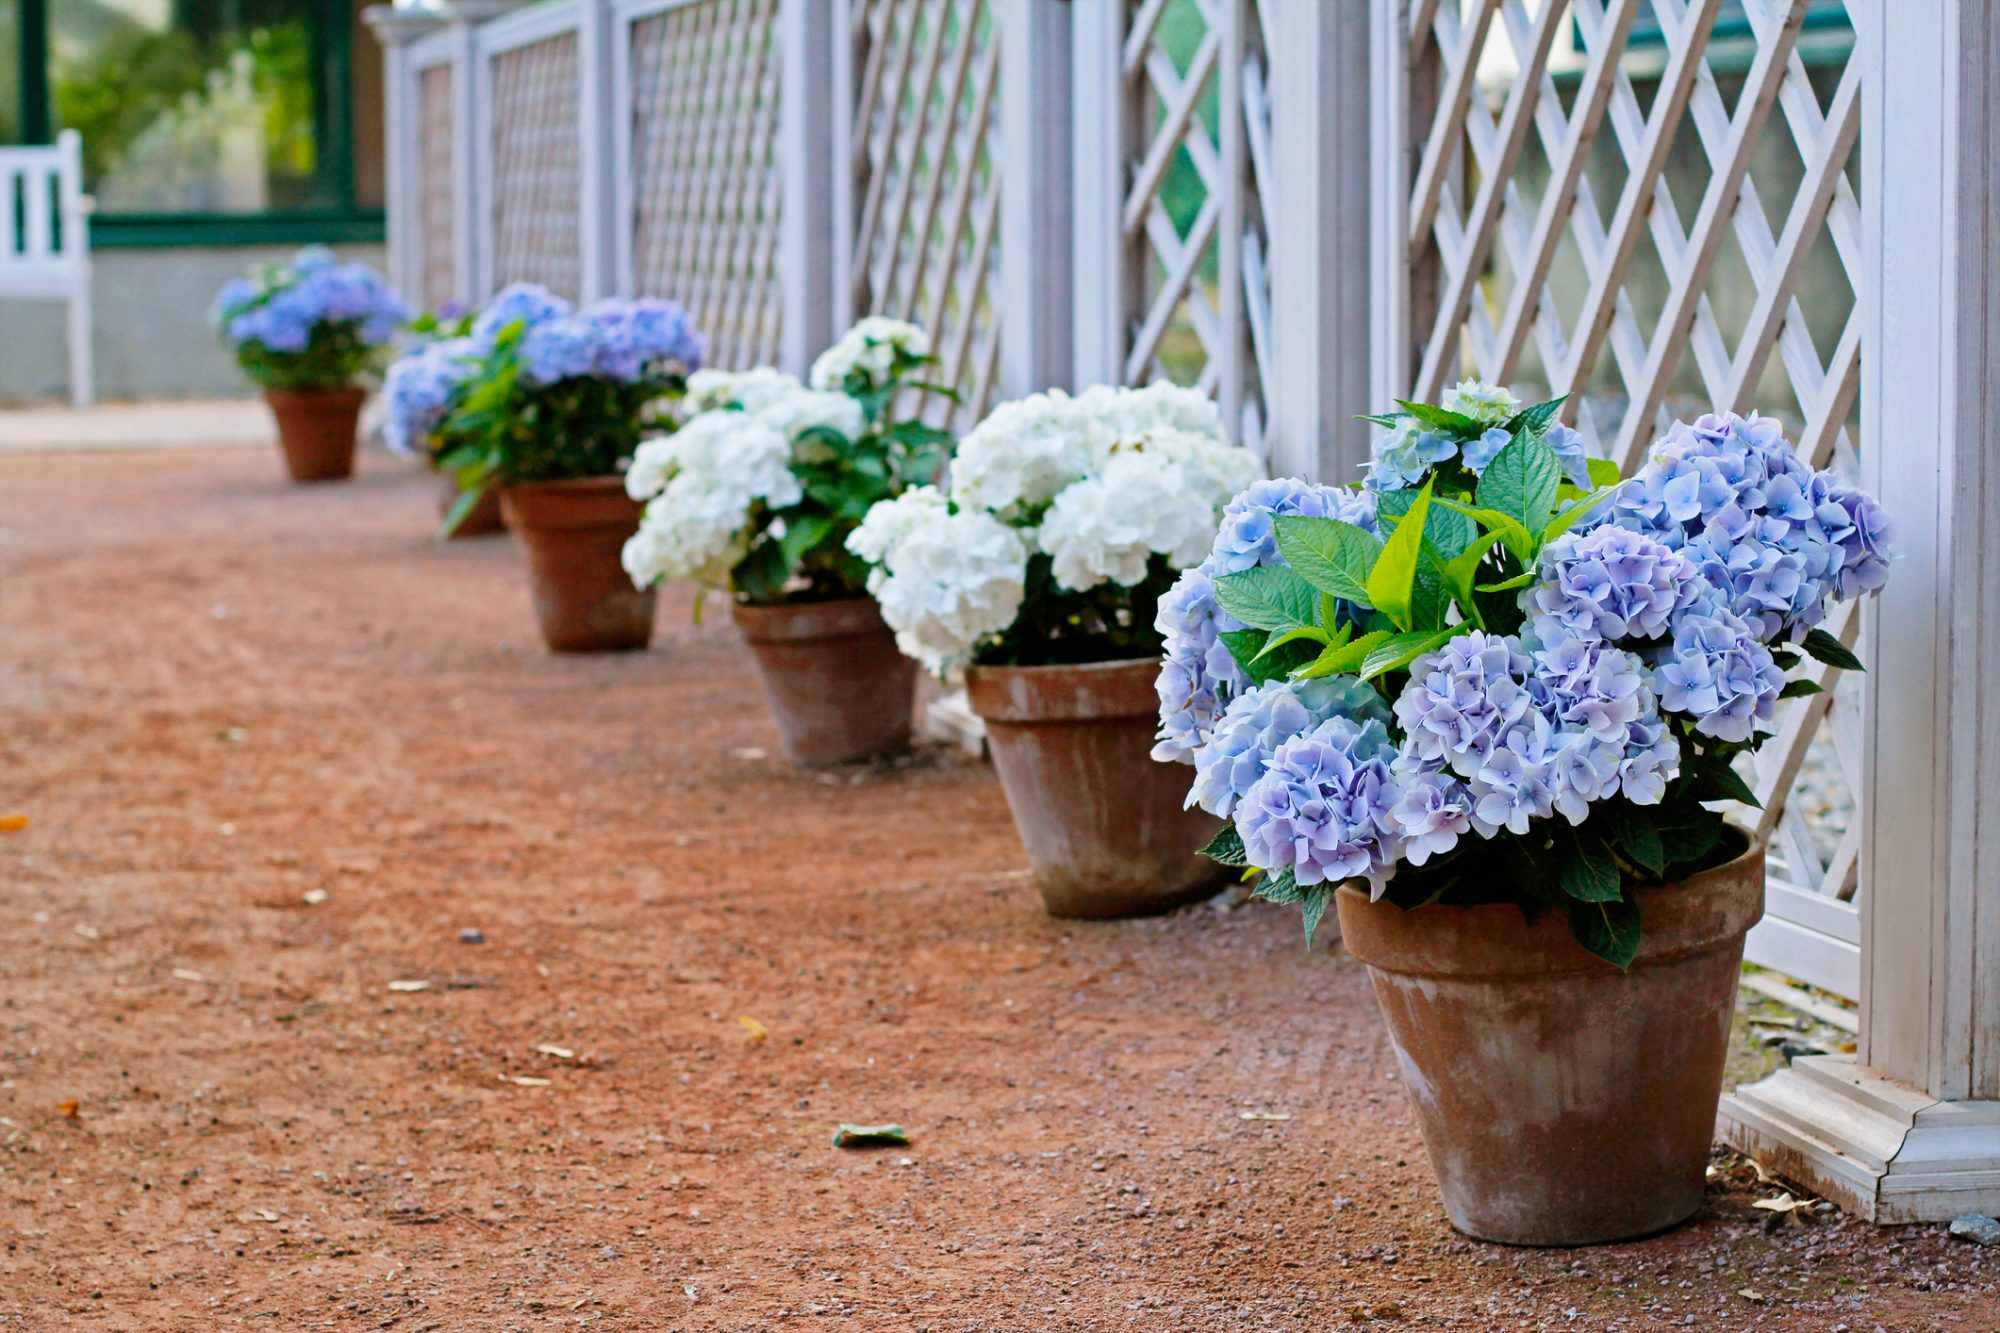 Blue and white hydrangeas in the pots at the white fence